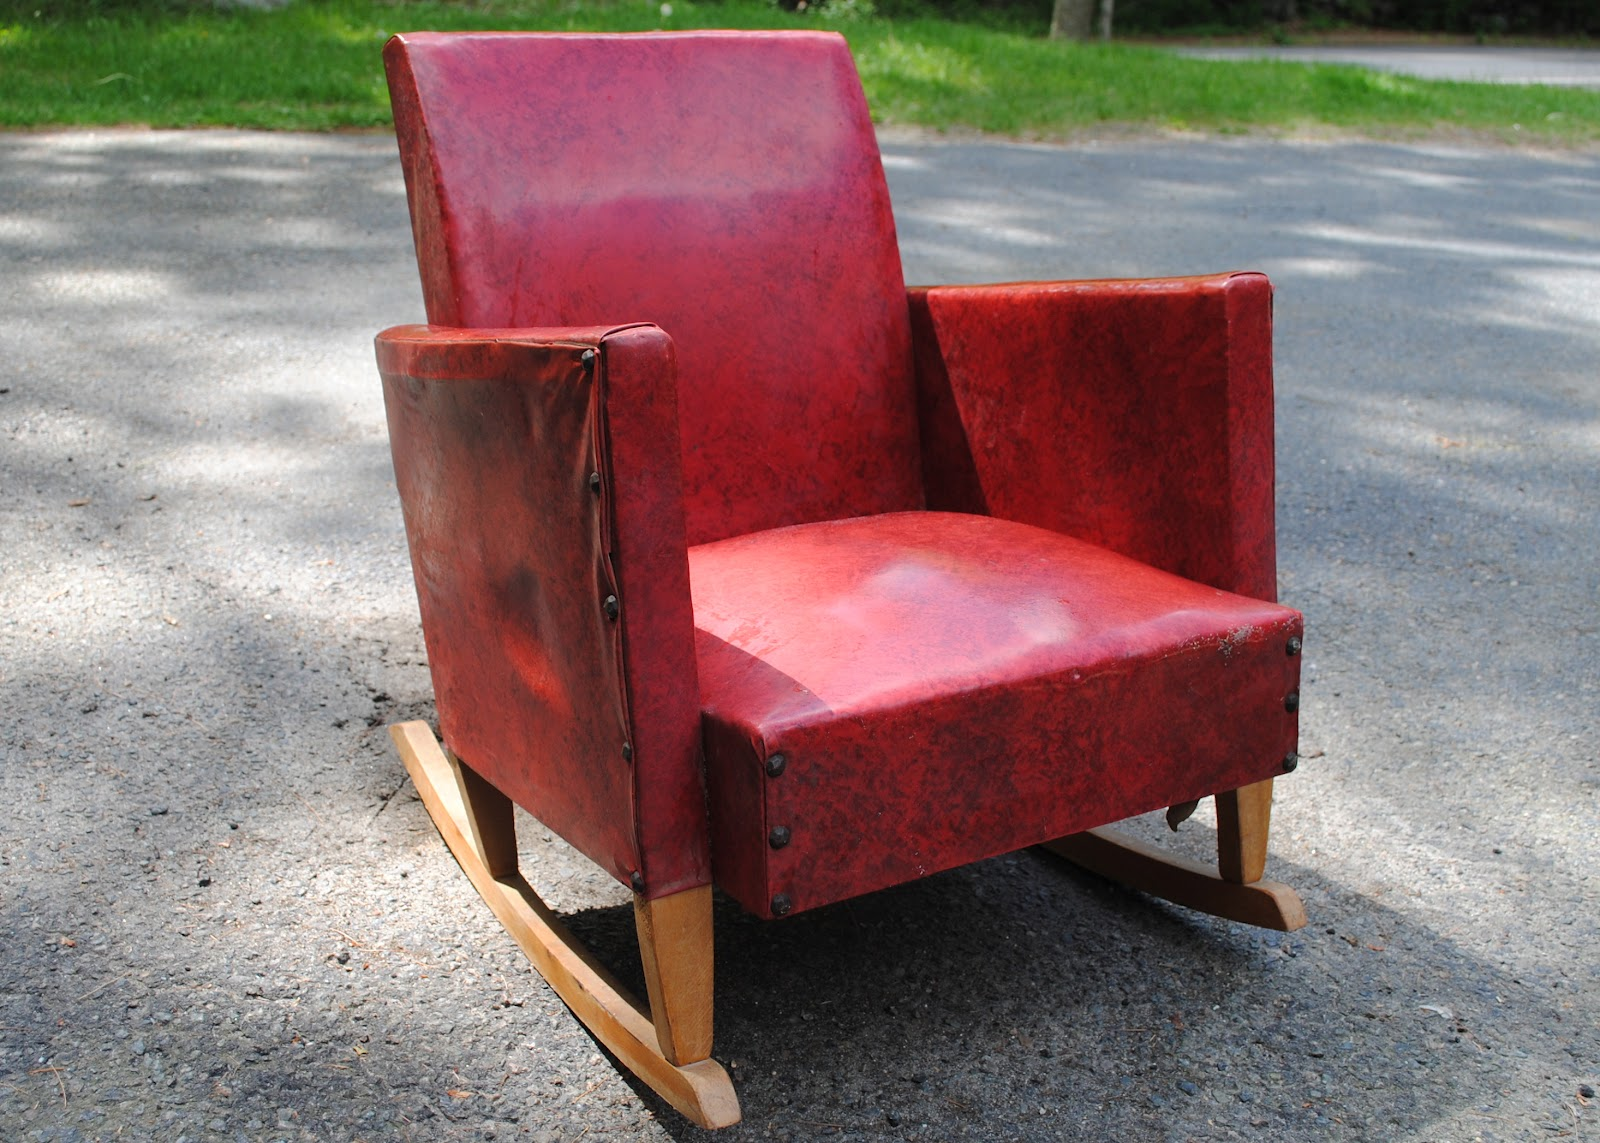 Upholstered Rocking Chair Diy Ish Upholstered Child 39s Rocking Chair The